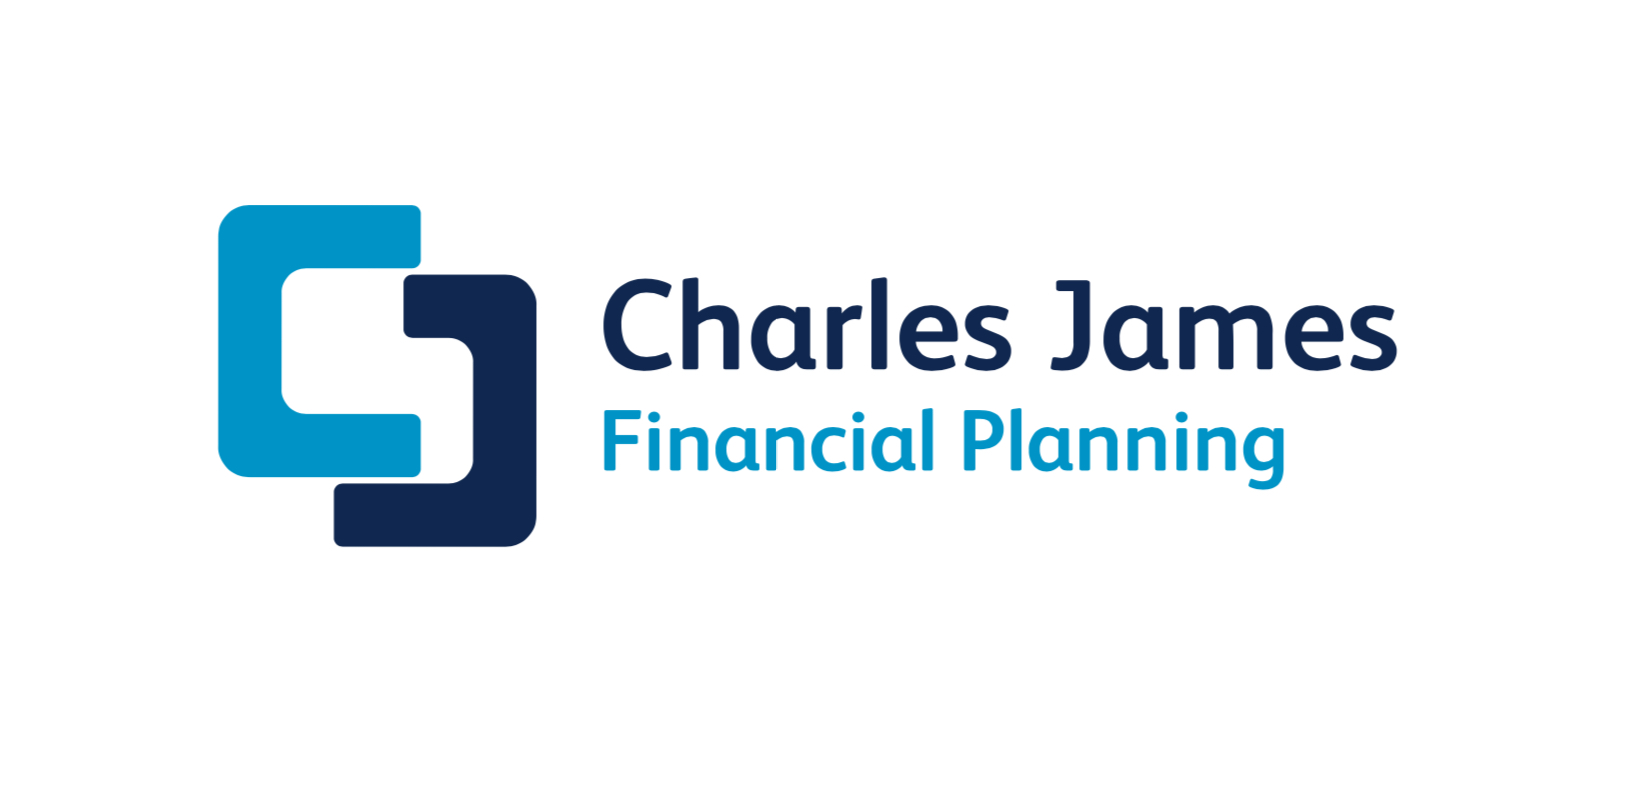 Silver Sponsors-Charles James Financial Planning - Charles James Financial Planning cover all aspects of financial planning from pensions and investments to estate planning, mortgages and insurance.We are pleased to welcome the Charles James Financial Planning team as Silver Sponsors at our 2019 event.